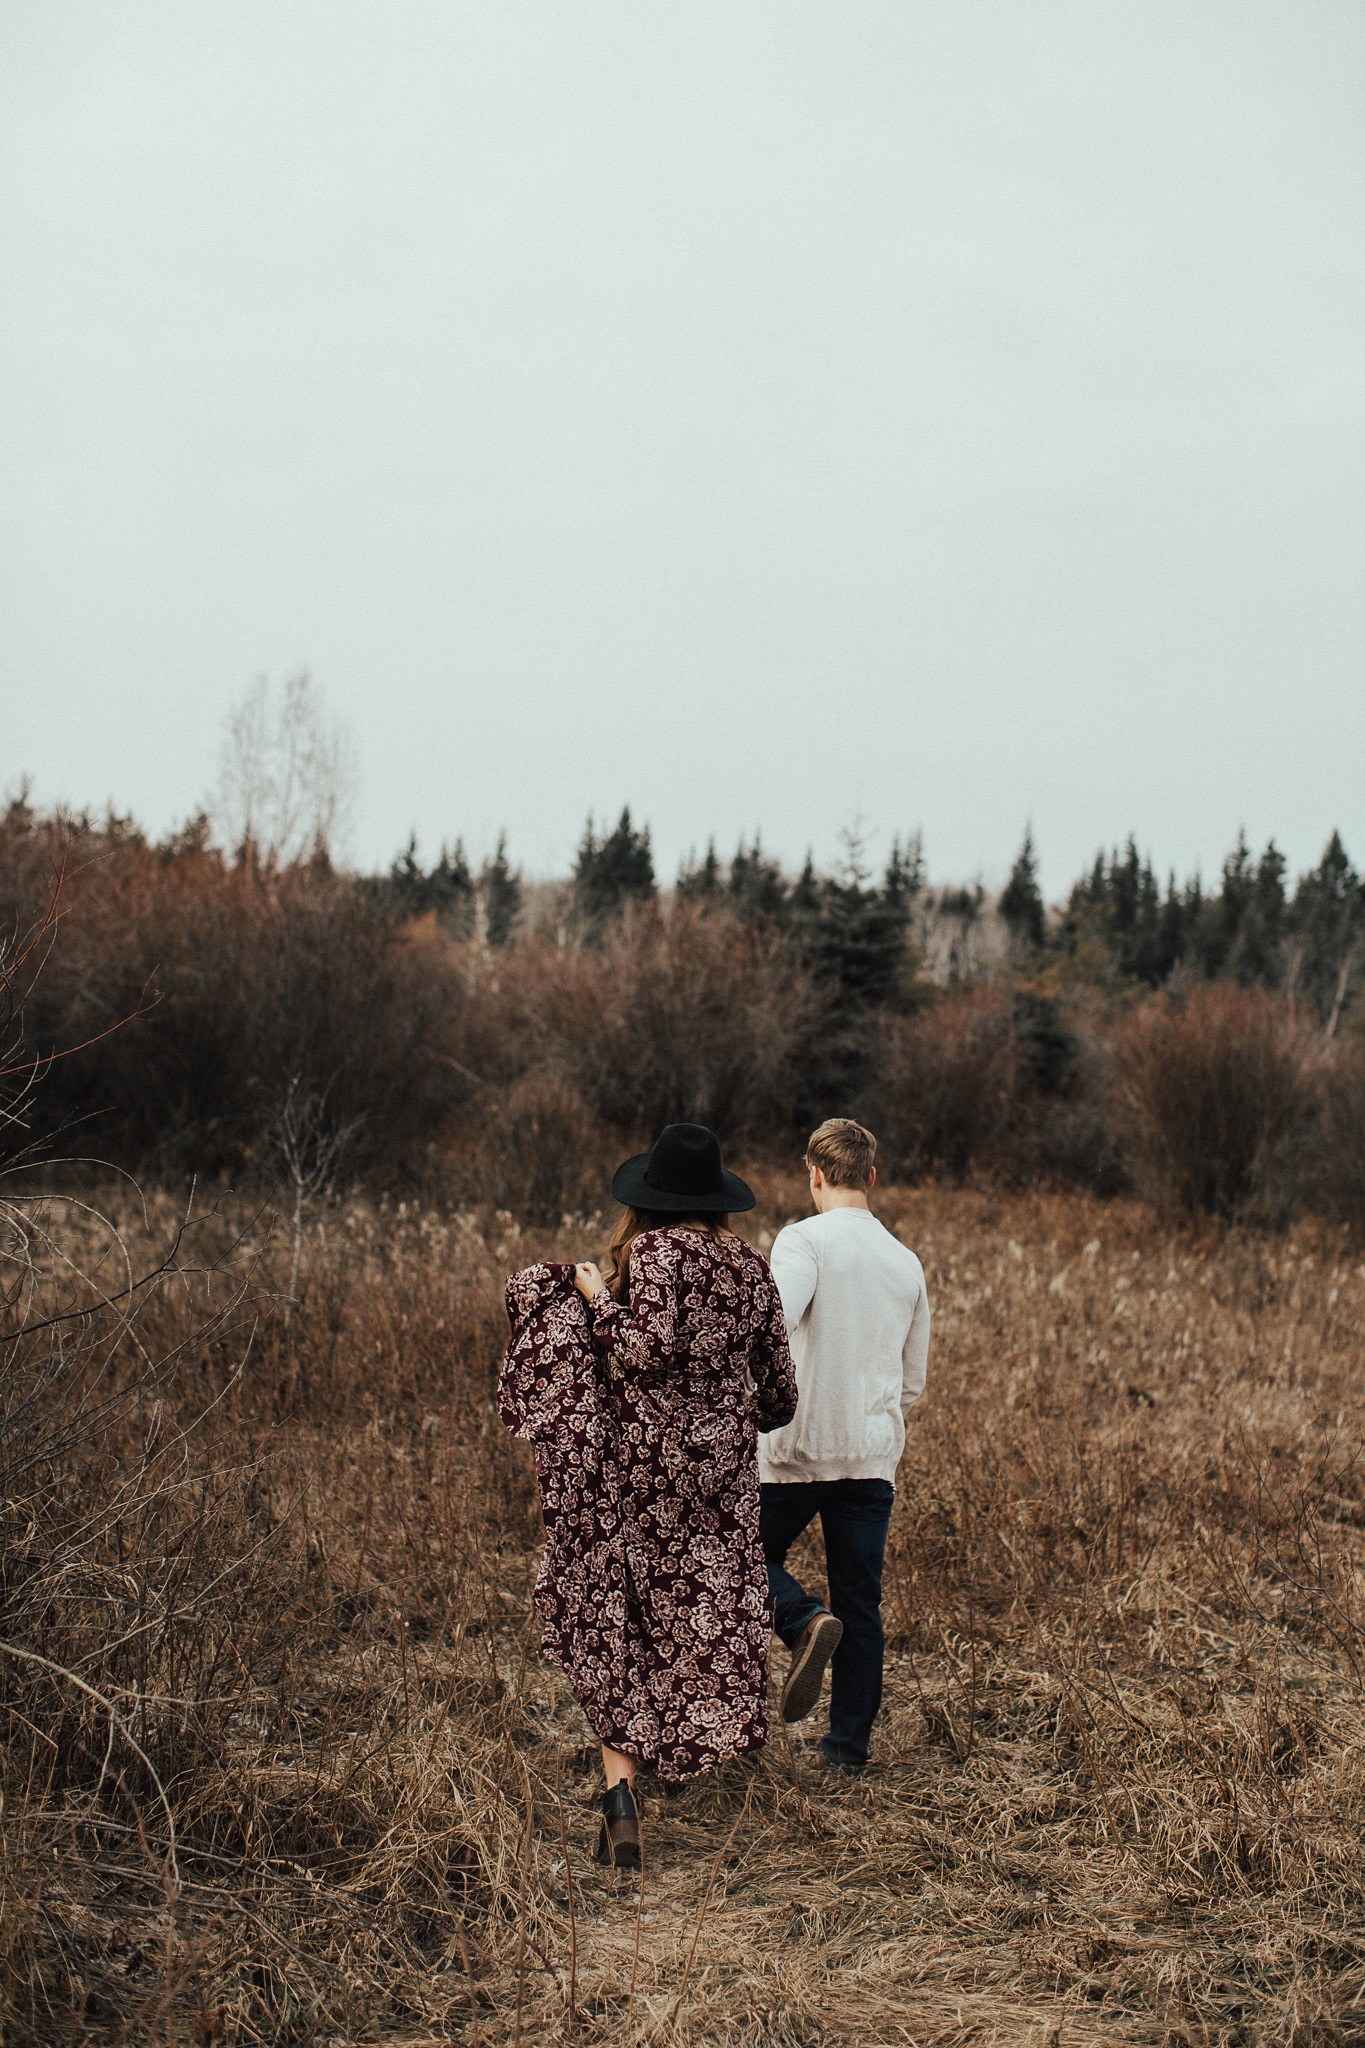 Edmonton Engagement Photographer - Michelle Larmand Photography - Mossy woods engagement session001